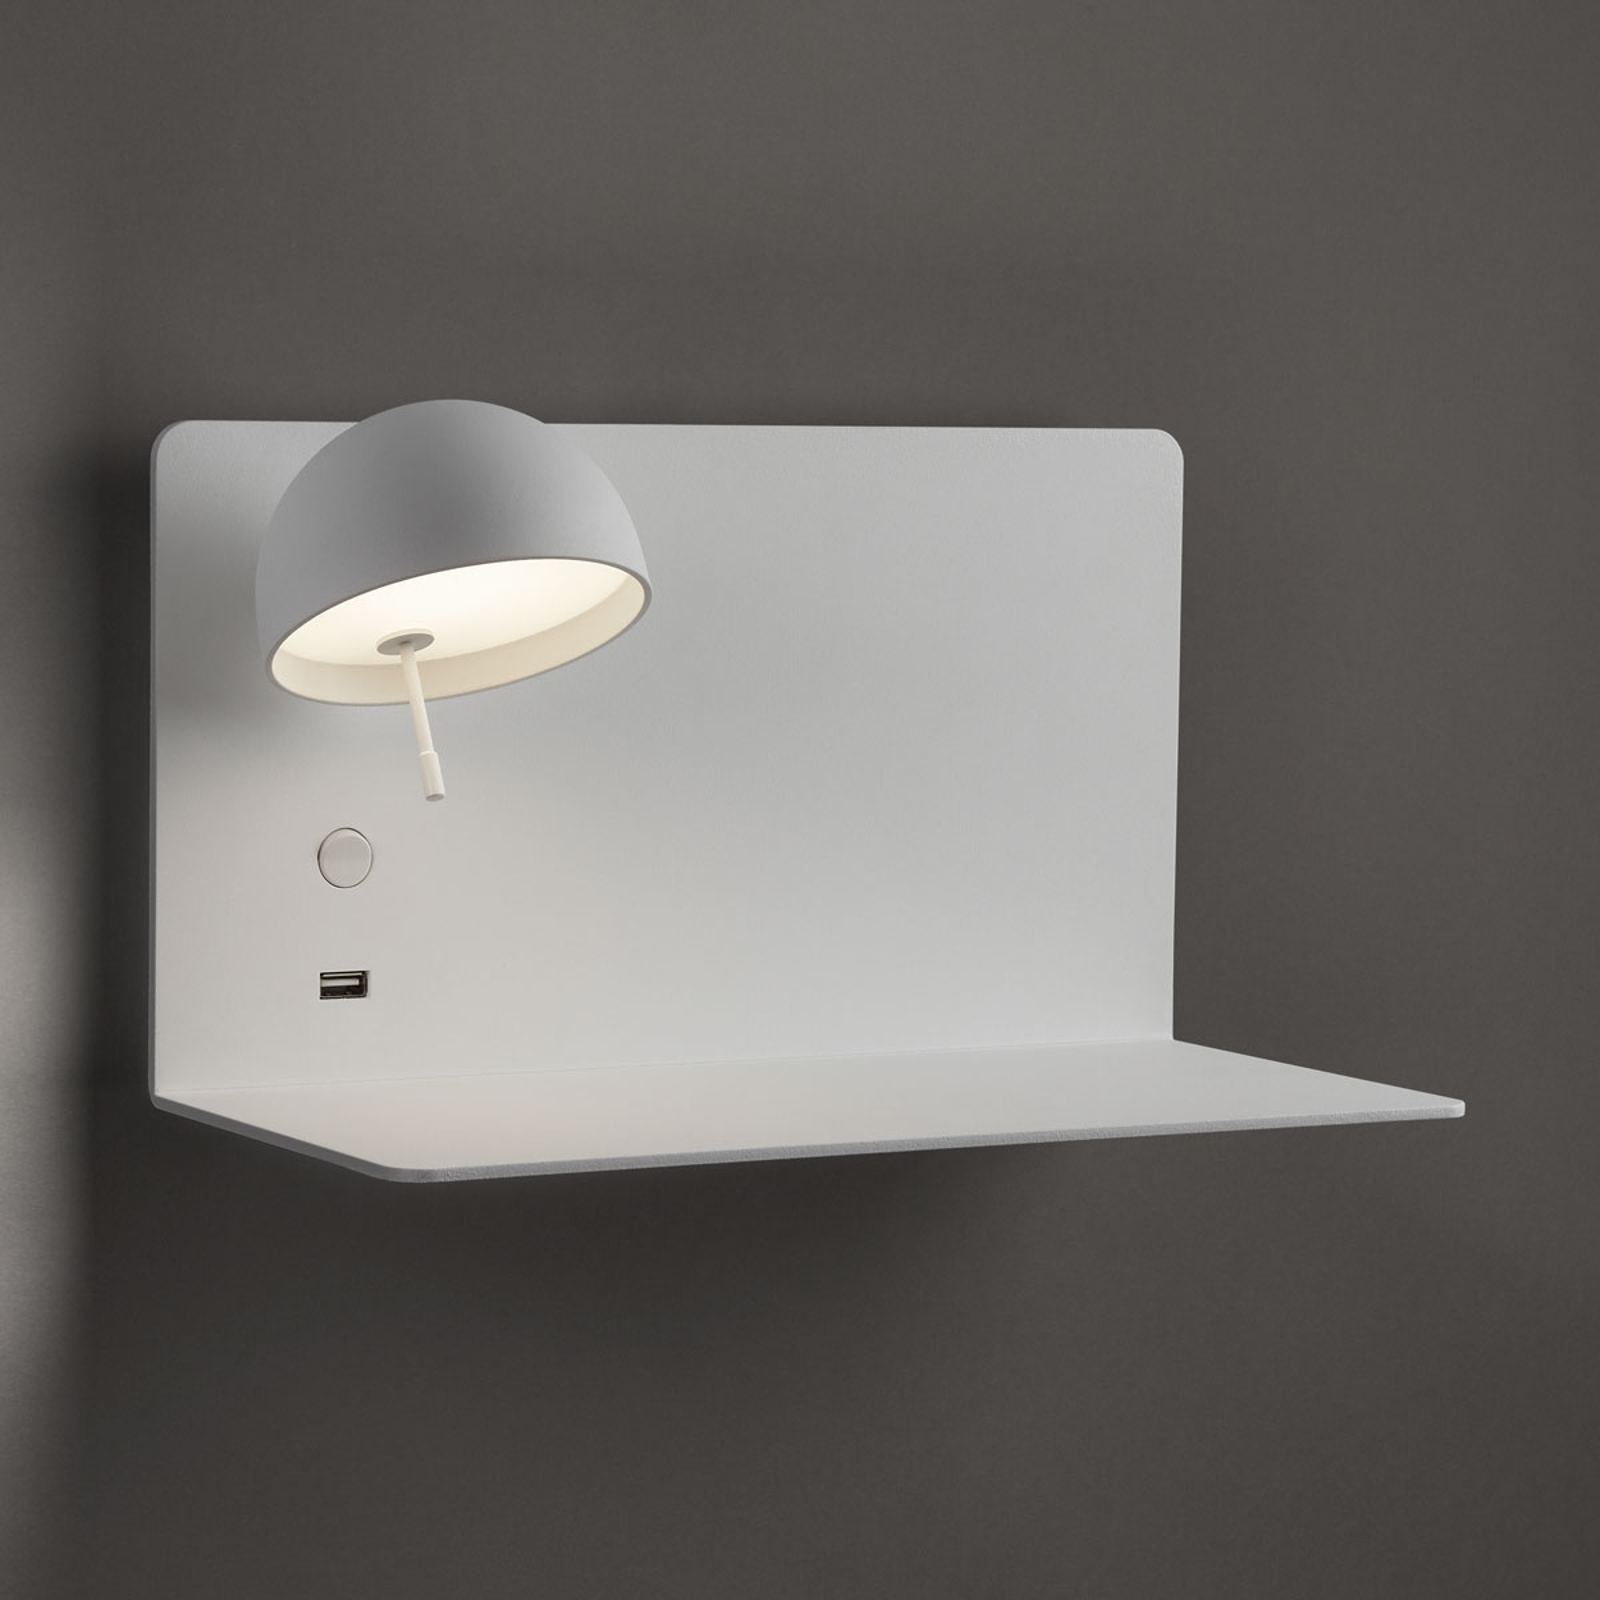 Bover Beddy A/03 LED wandlamp wit spot links